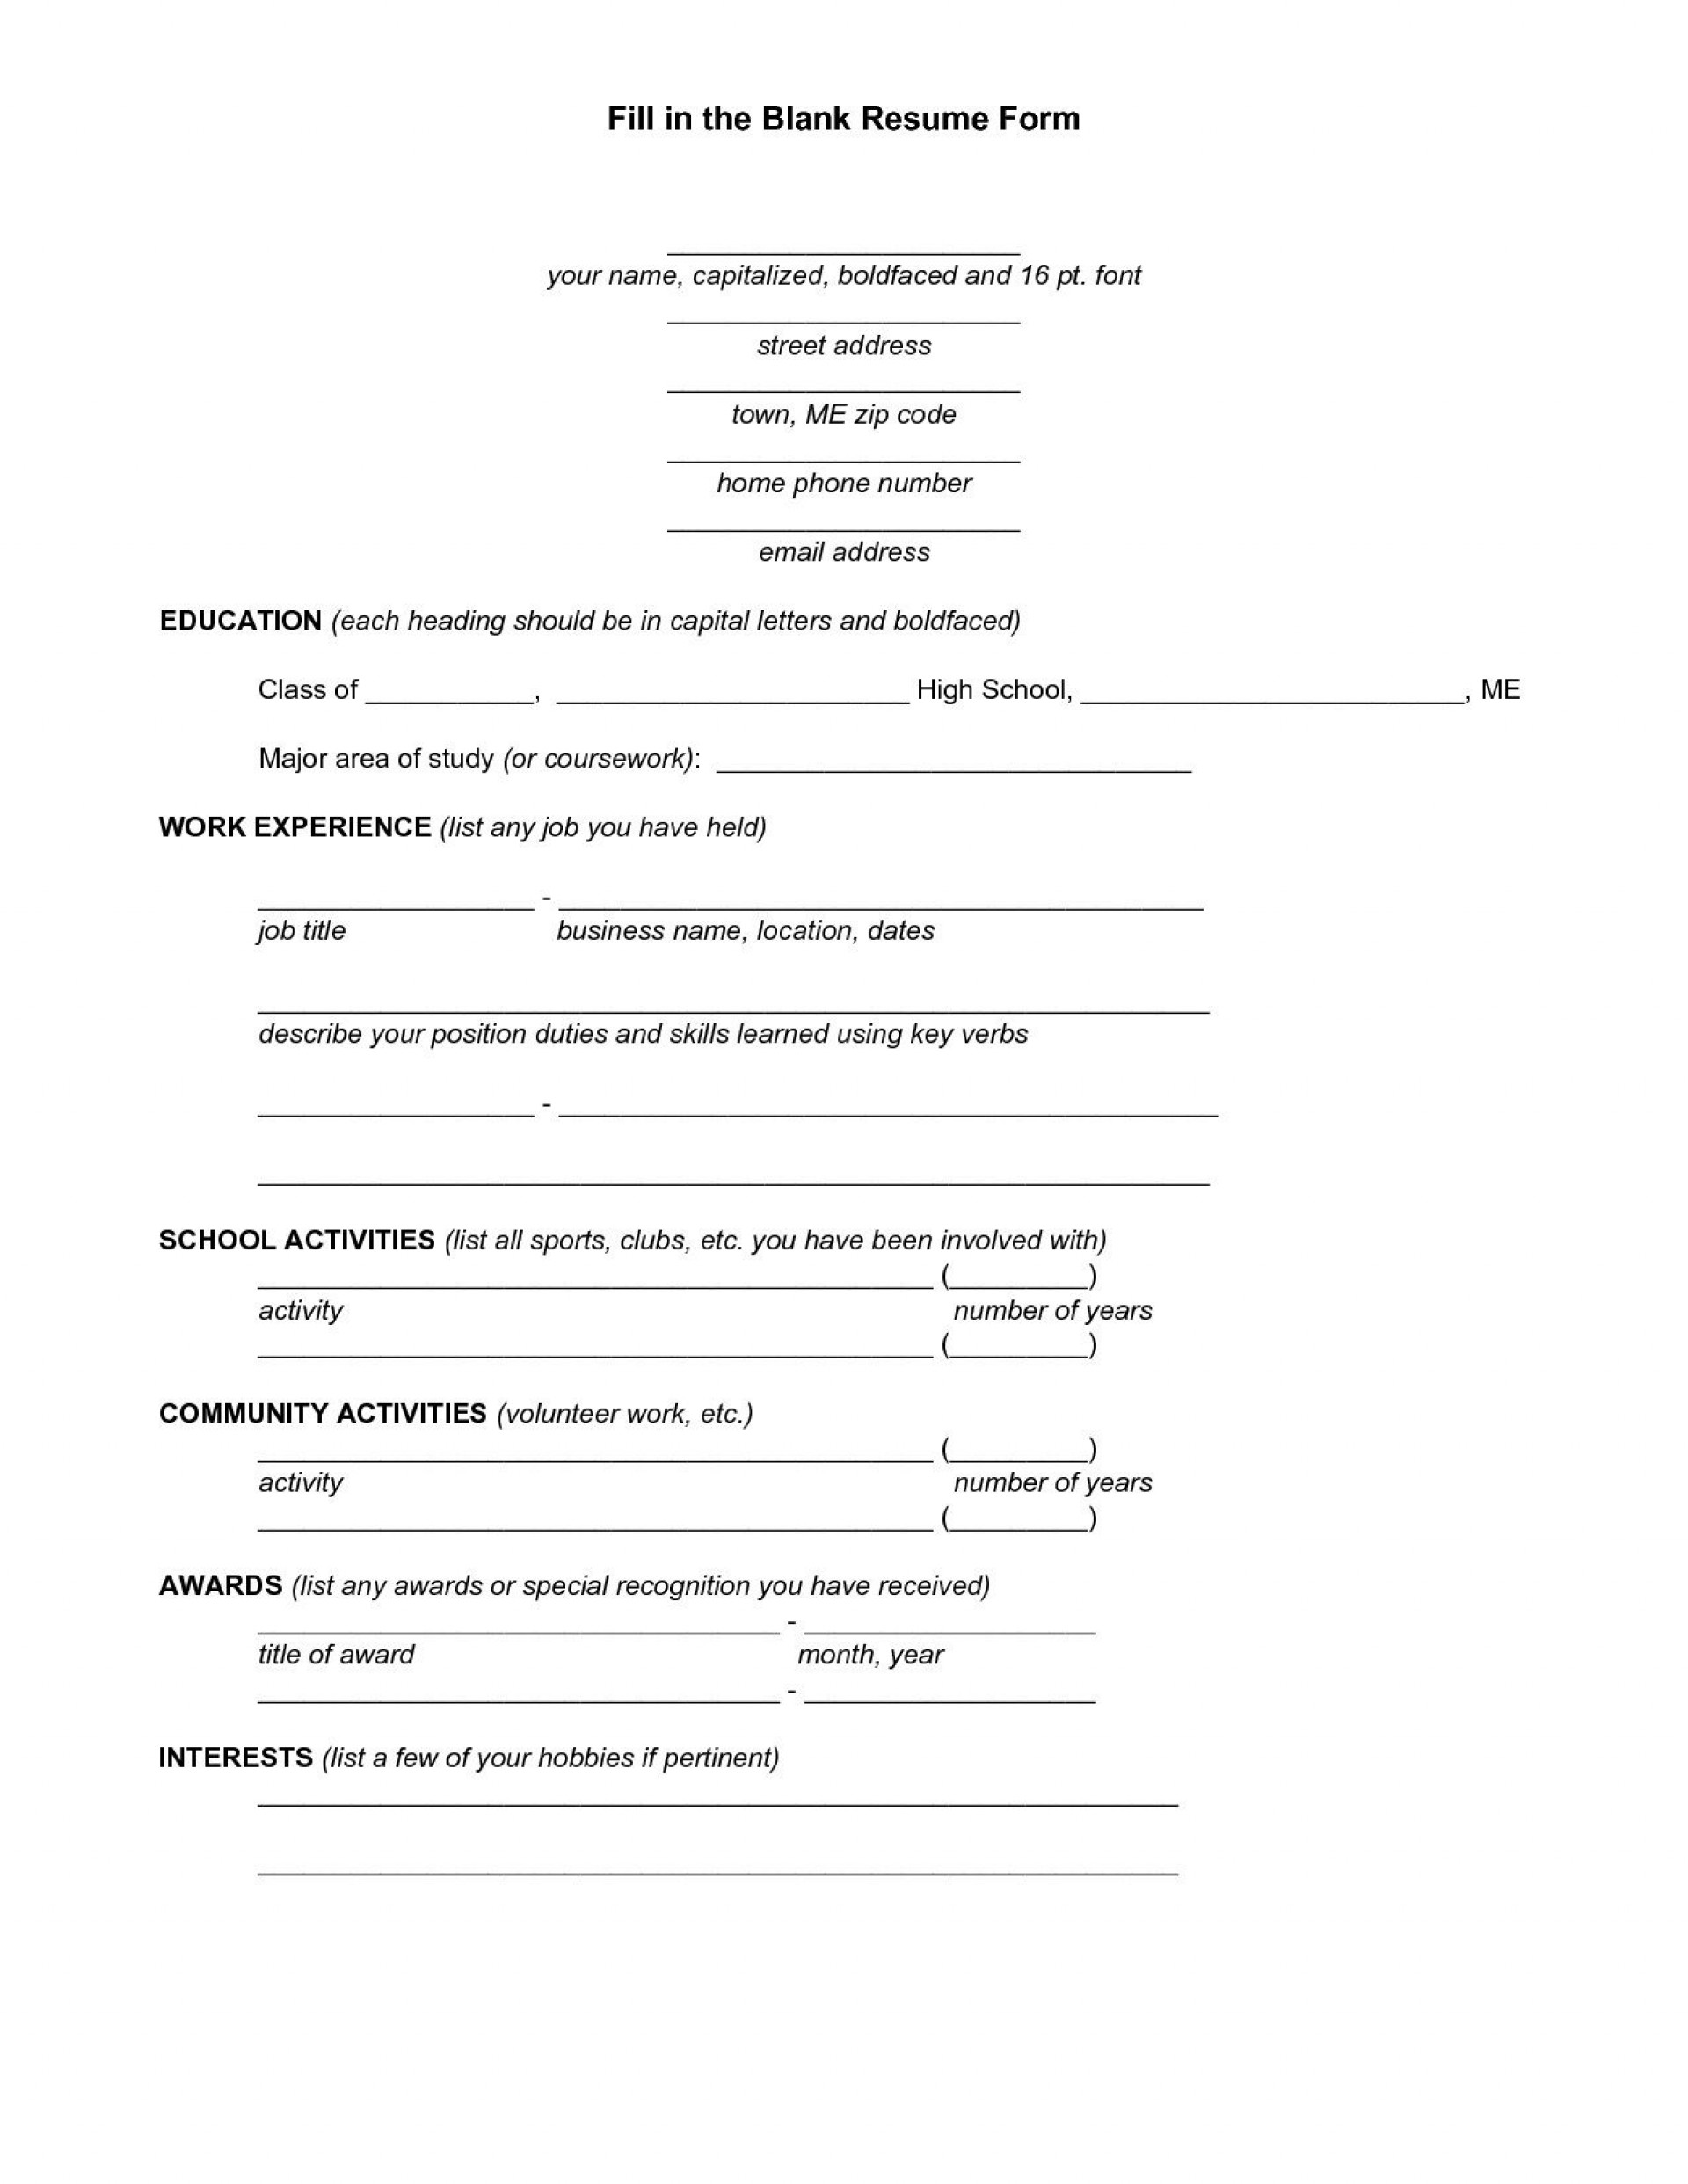 Fill In Resume Template Addictionary